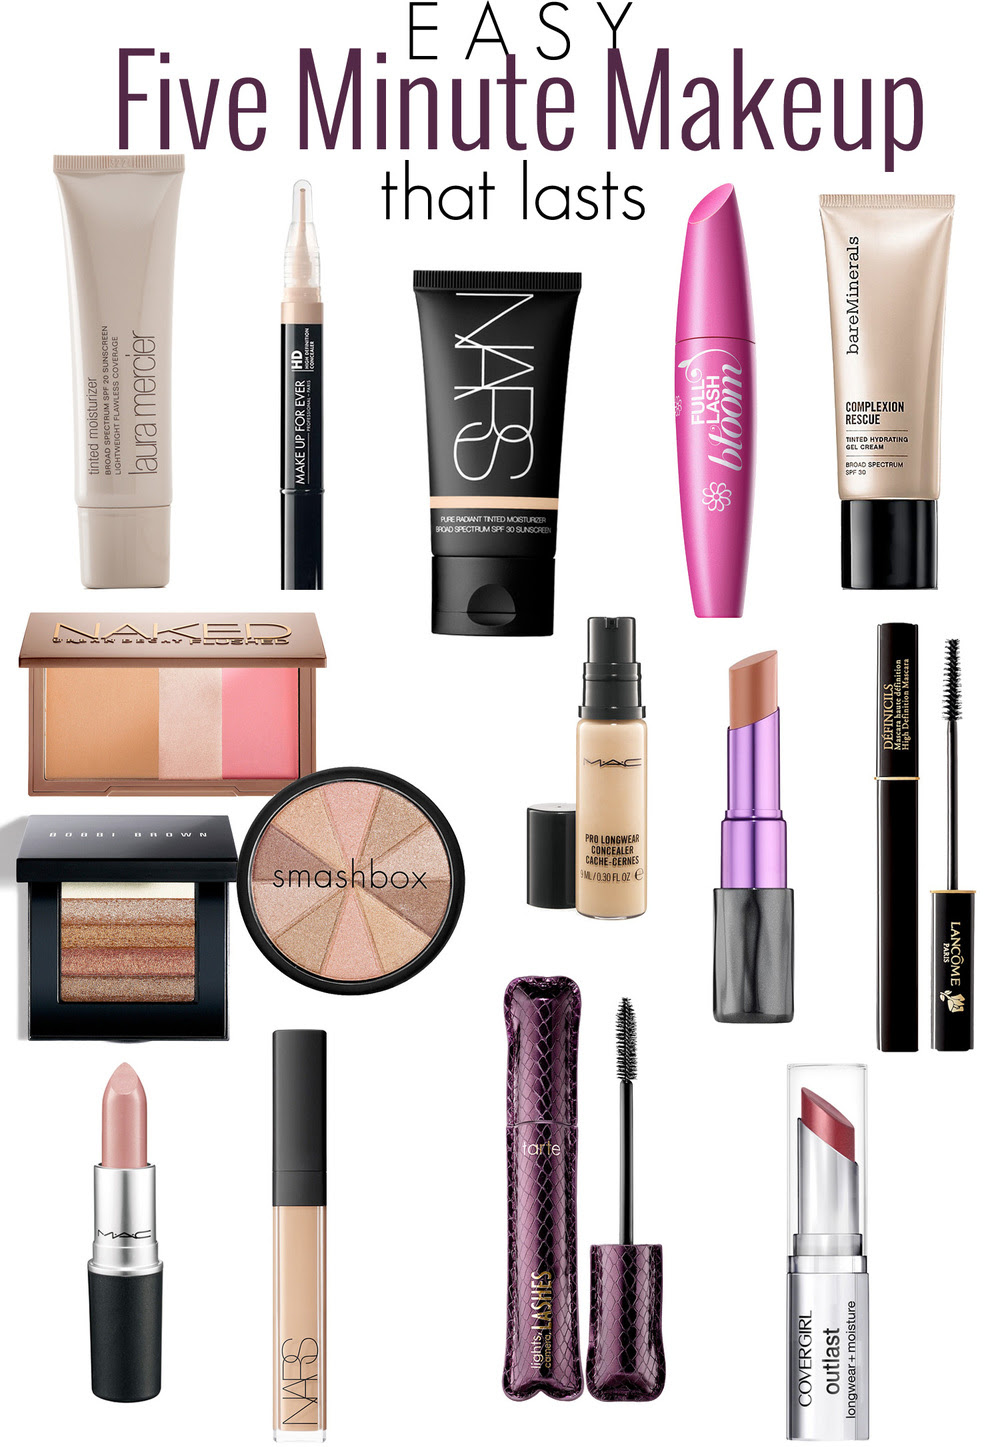 f7343196078 The best makeup products to use for a fast + easy 5 minute makeup routine.